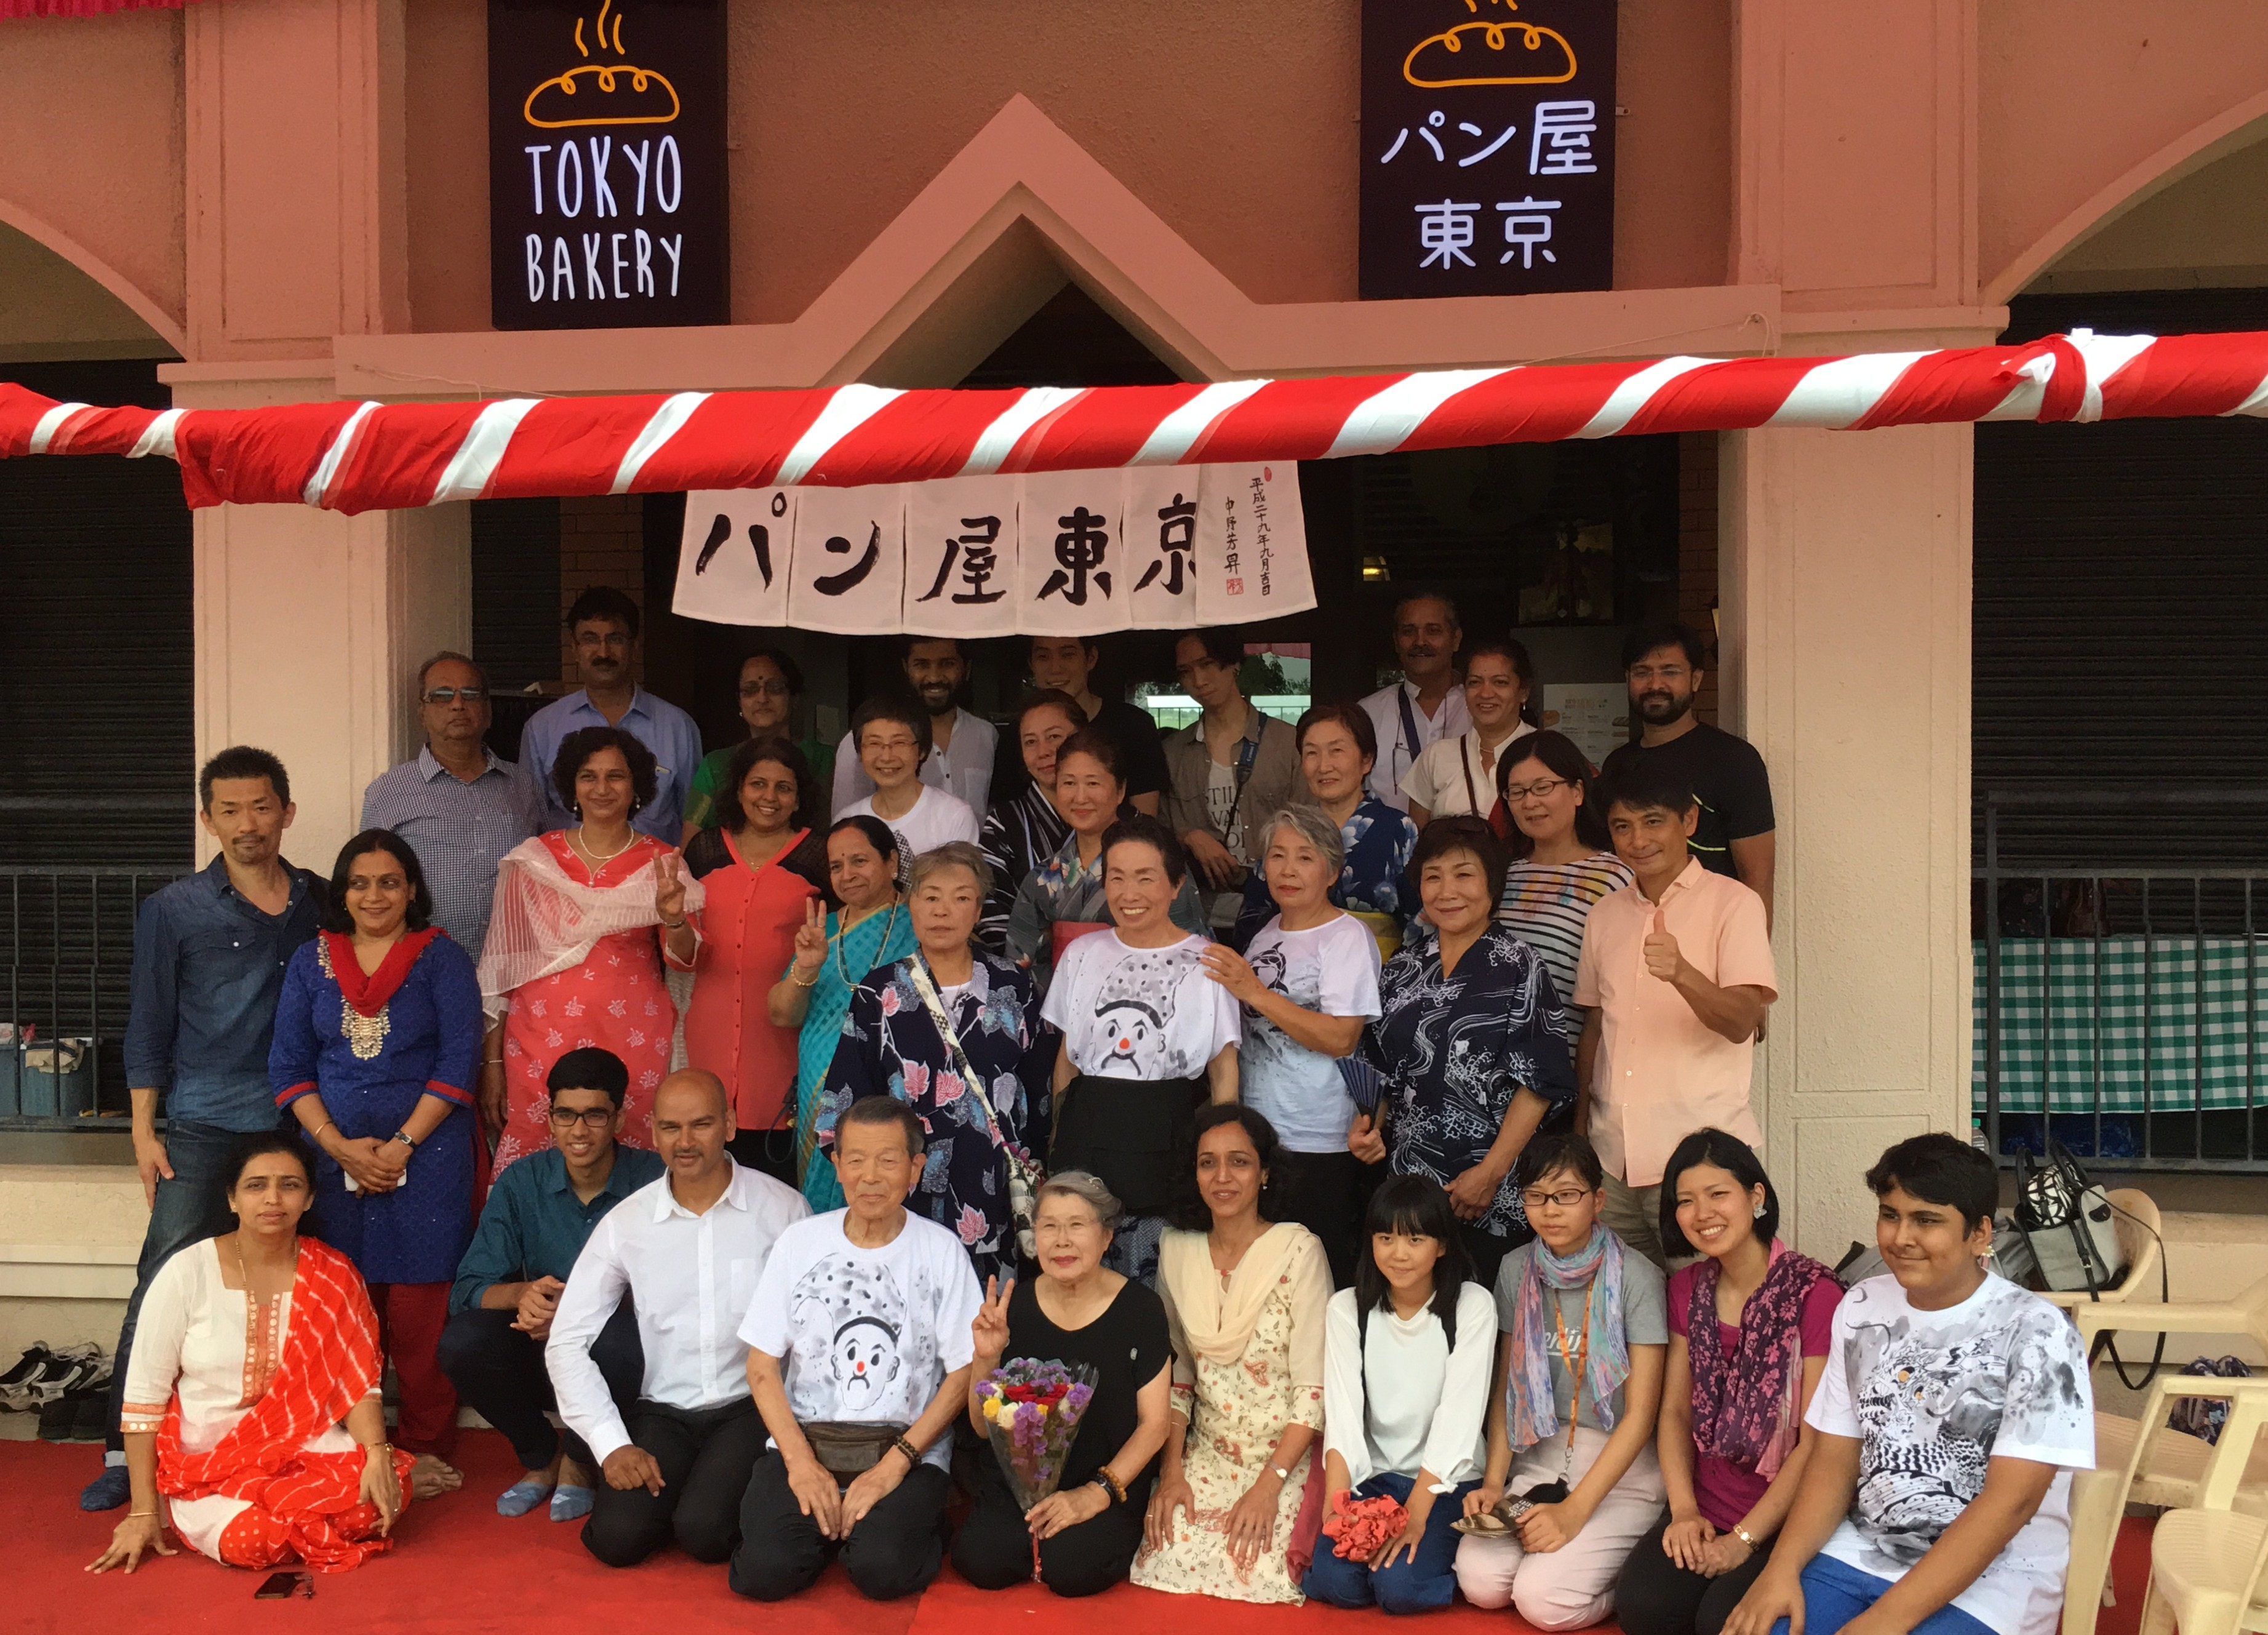 Tokyo Bakery opened in September 2017, with help from the owners' Japanese friends